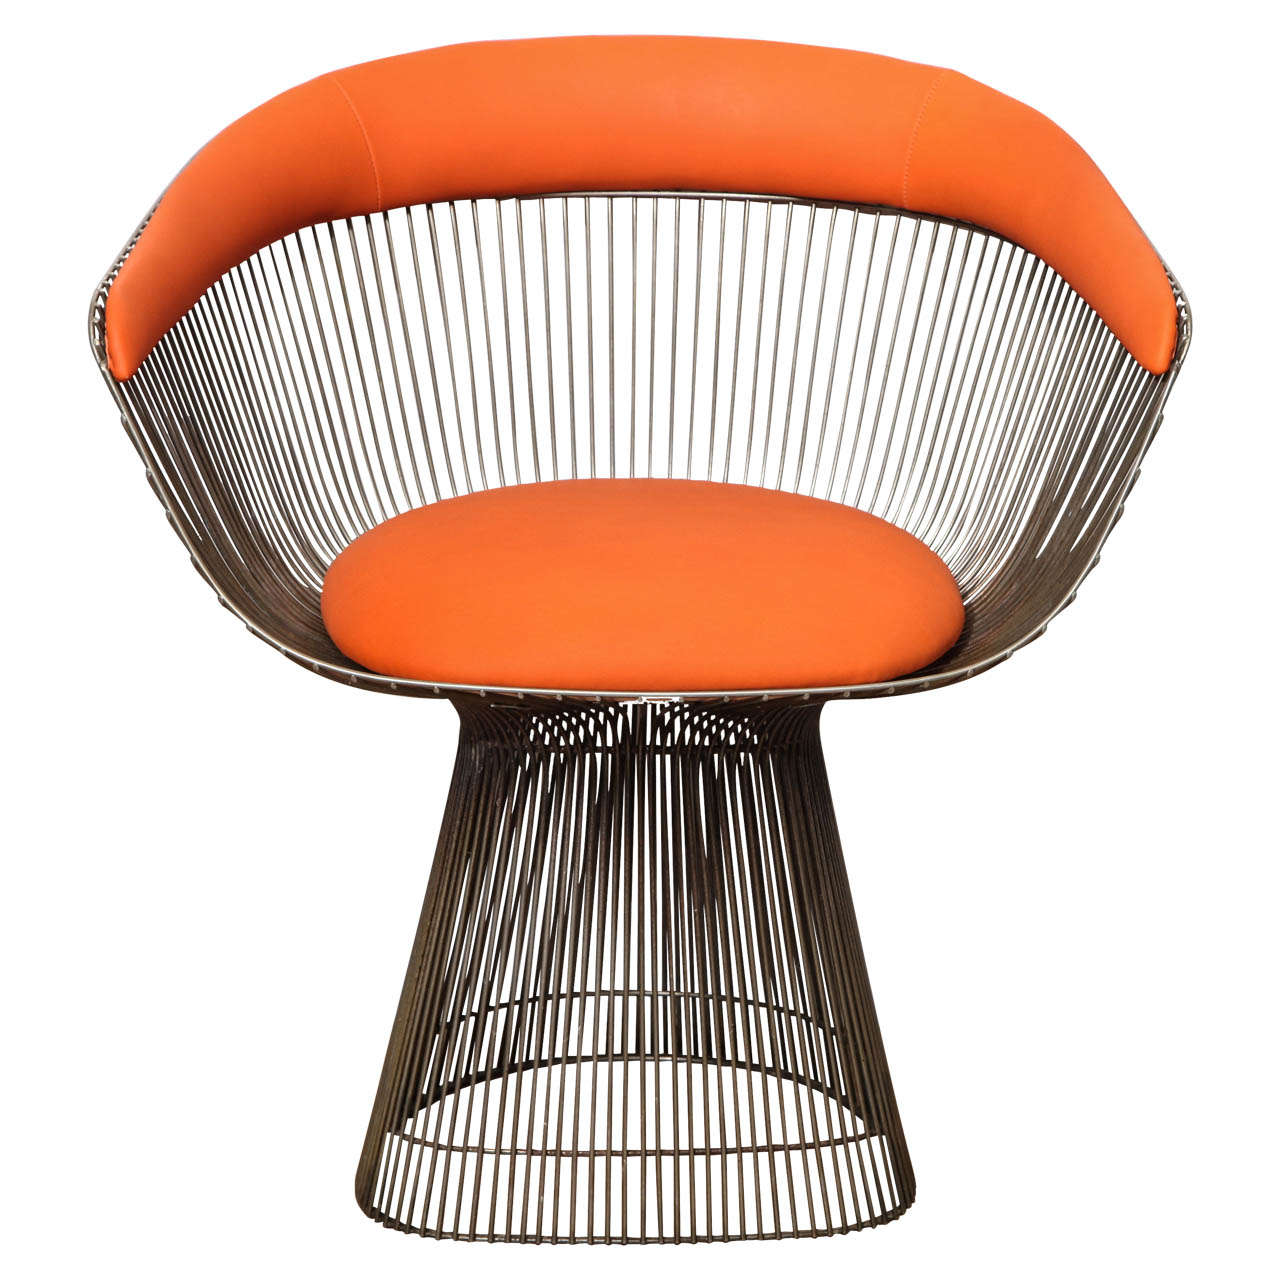 Platner Chair modernist chairwarren platner at 1stdibs